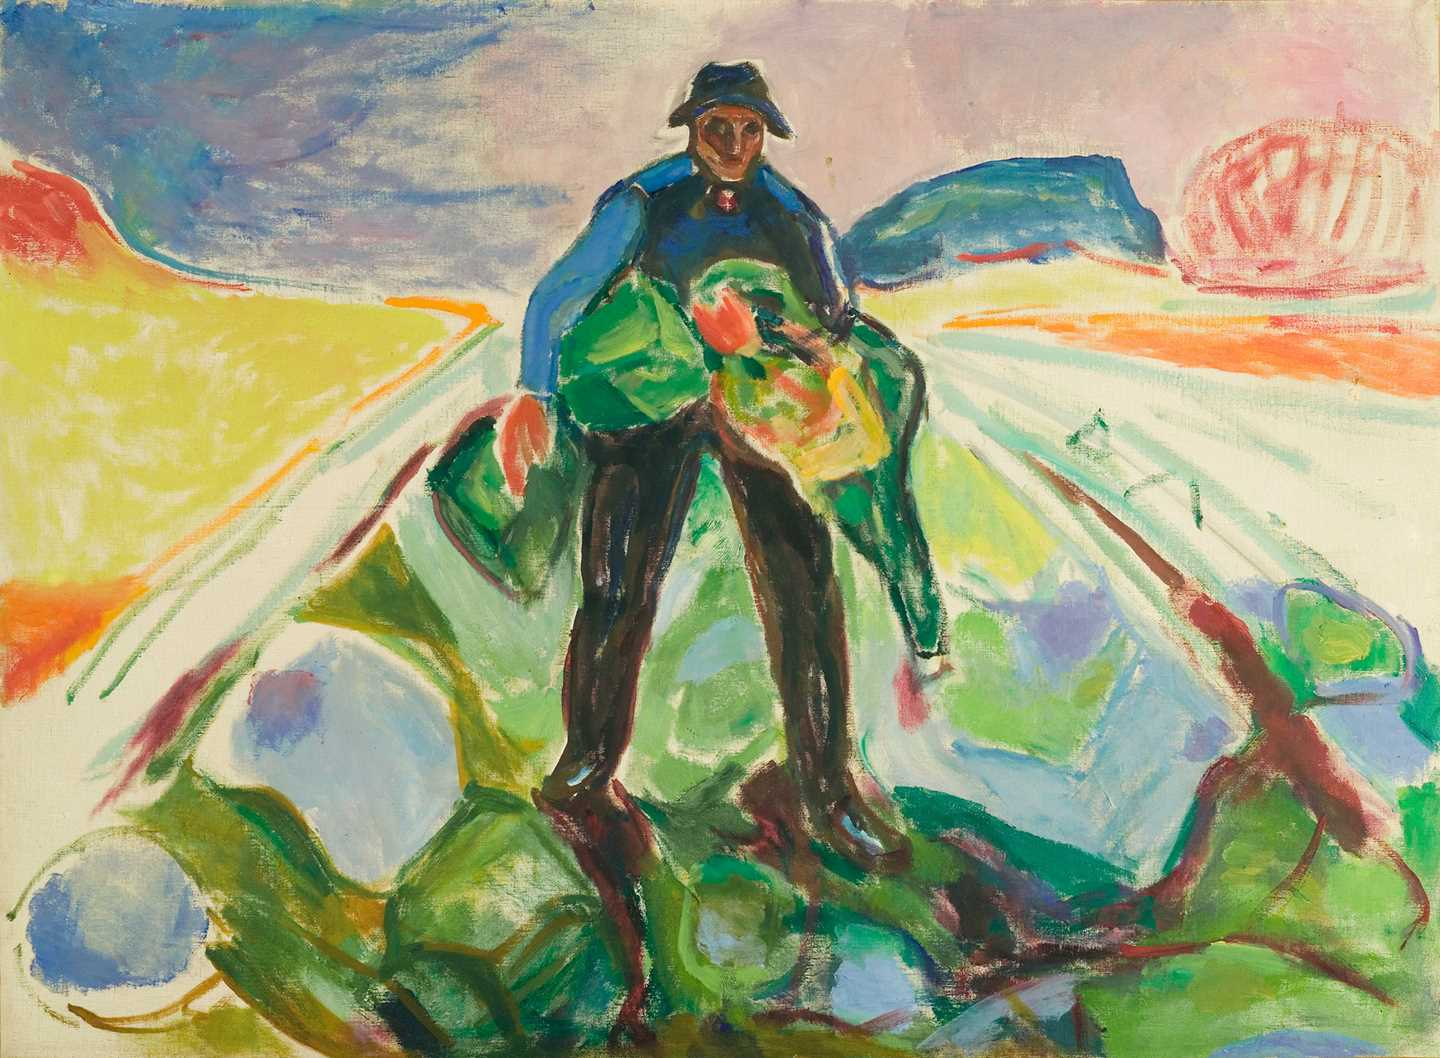 Edvard Munch: The Man in the Cabbage Field. Oil on canvas, 1943. Photo © Munchmuseet